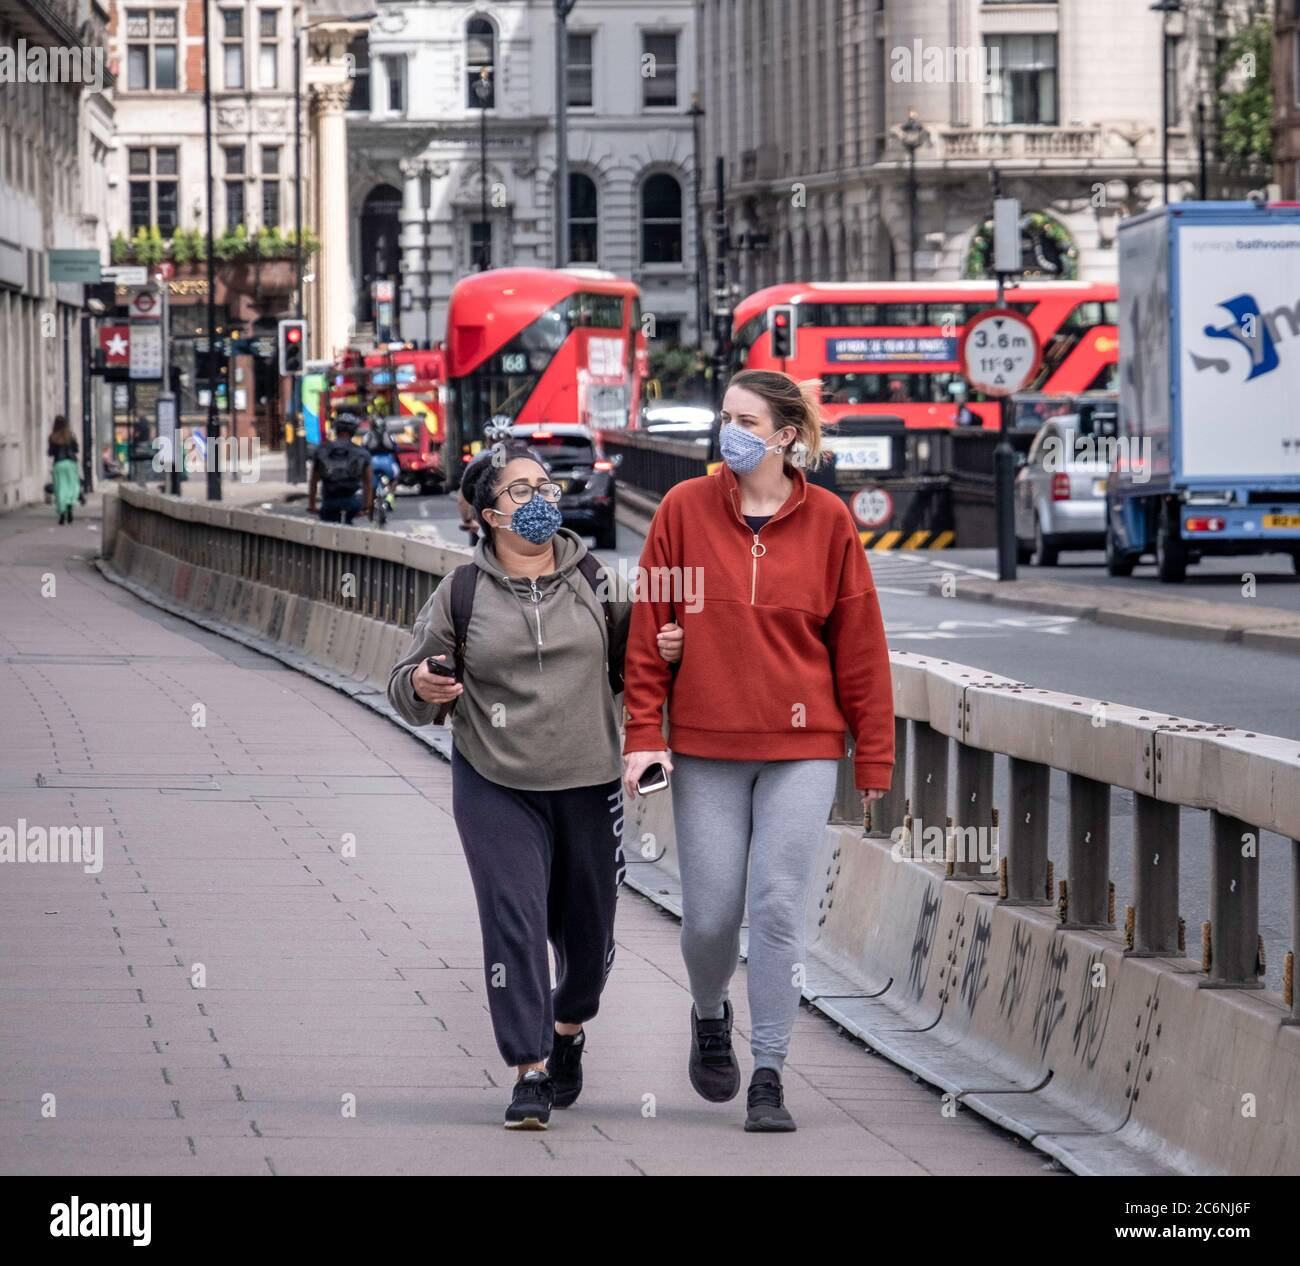 Two woman with face coverings in London during the covid-19 pandemic. Stock Photo